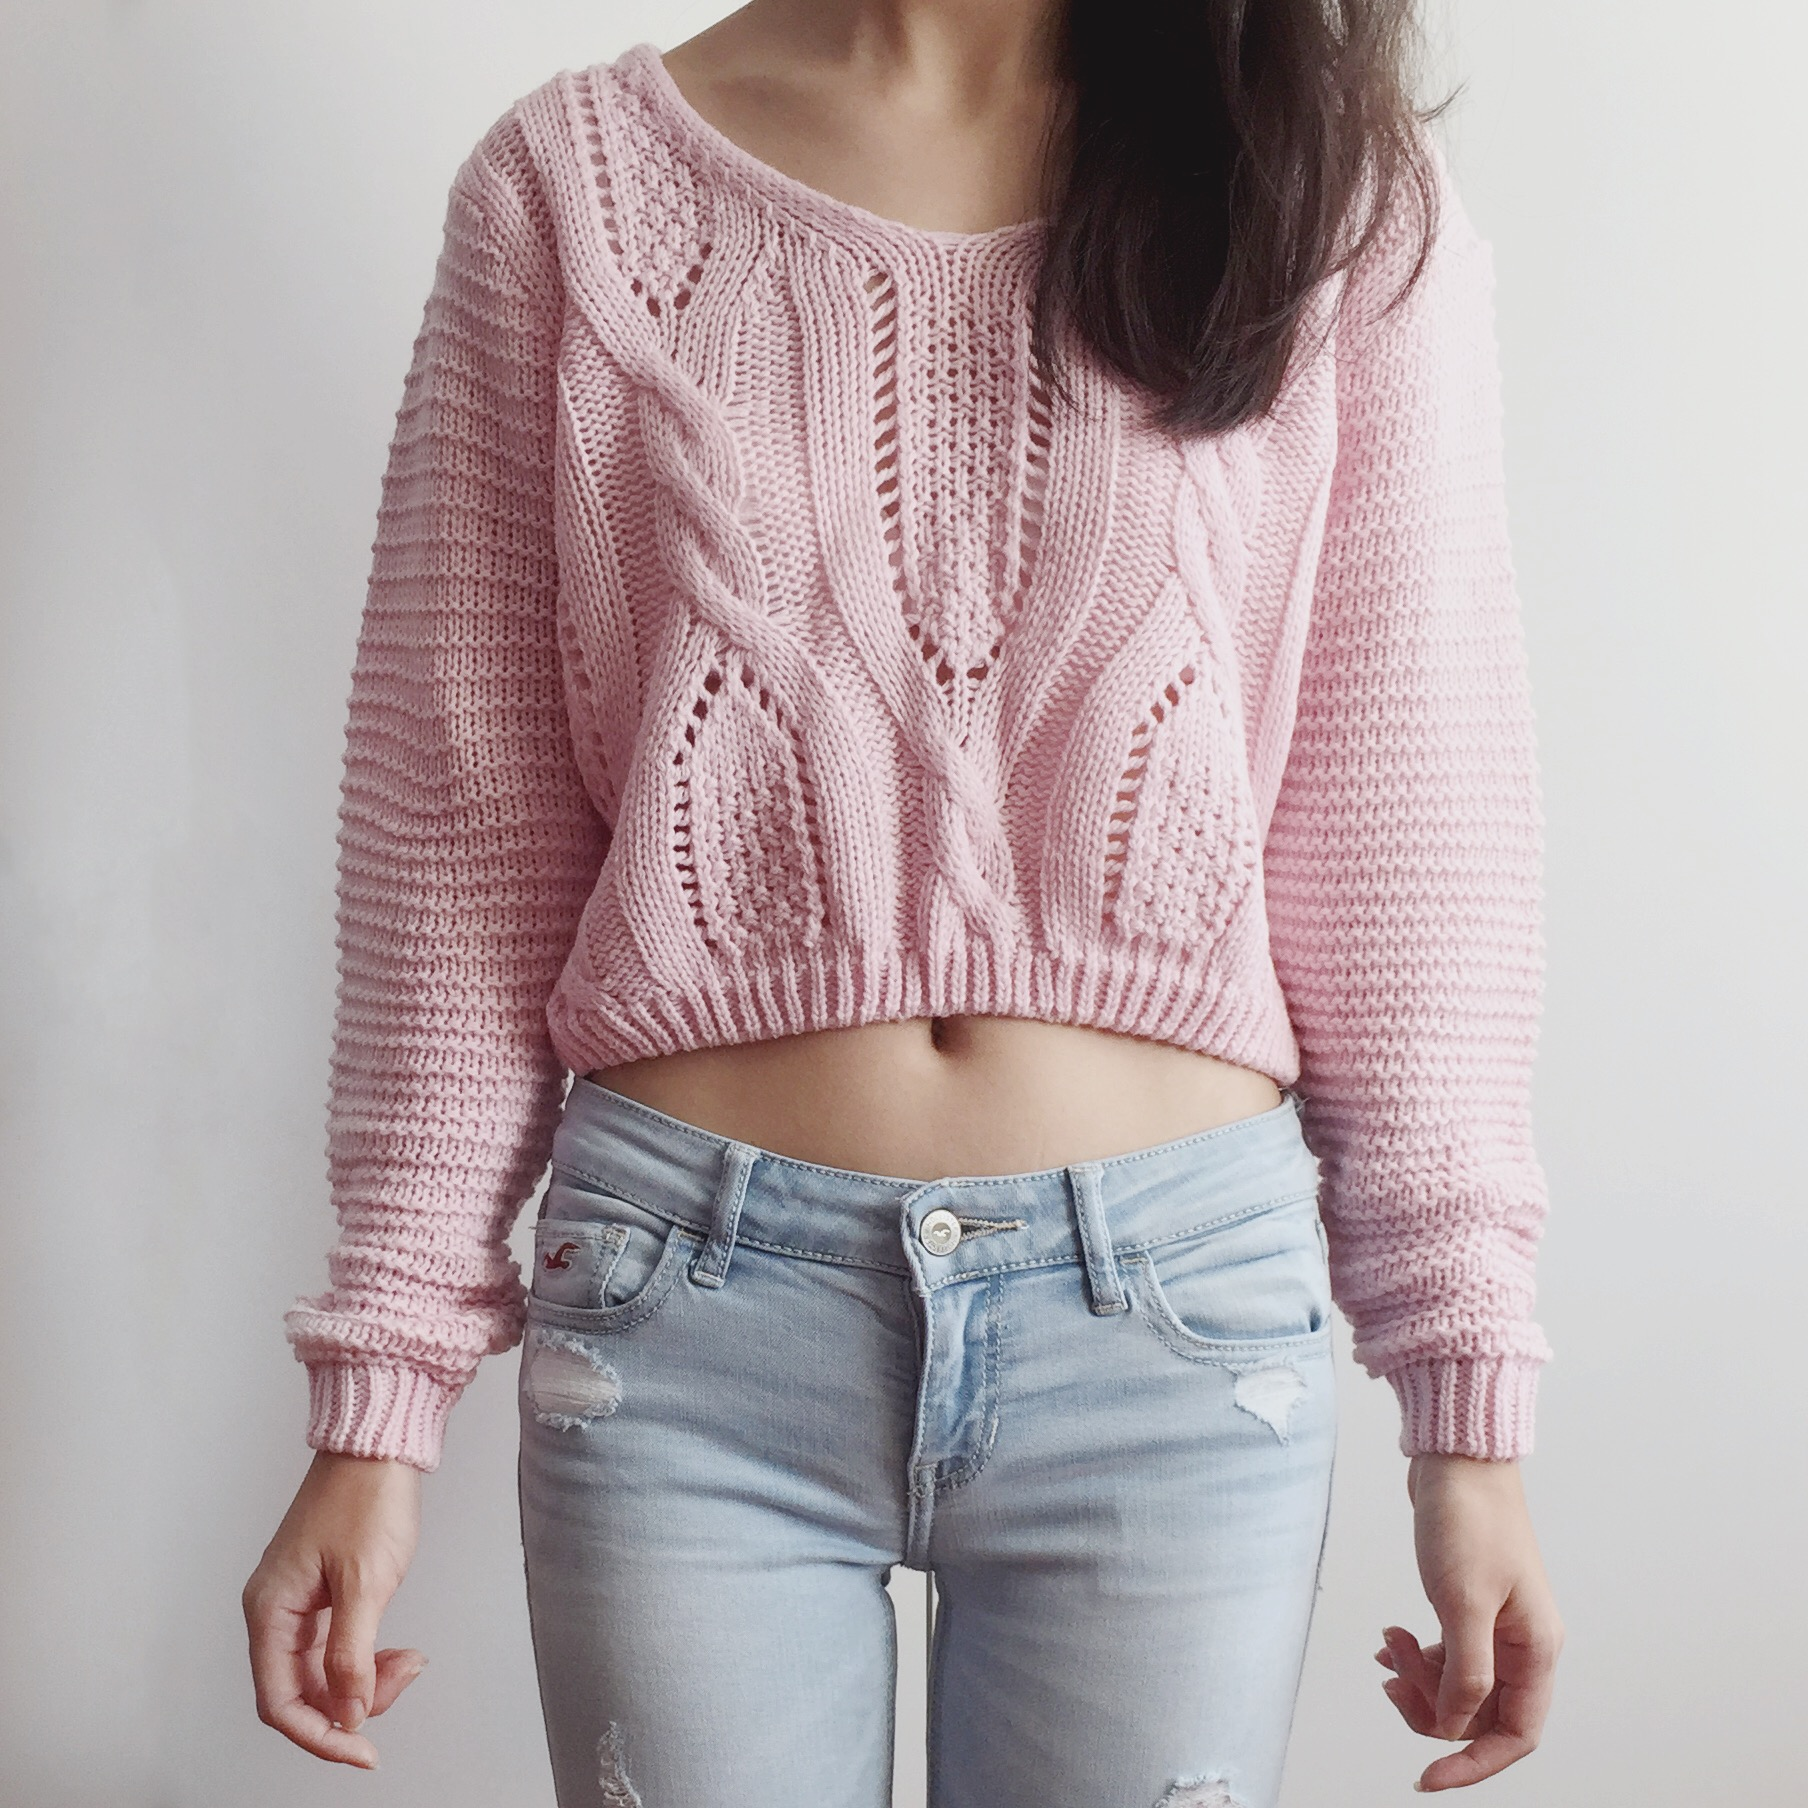 2315b42ba52e9 Lace Up Back Cropped Knit Sweater (Pink) from Megoosta Fashion